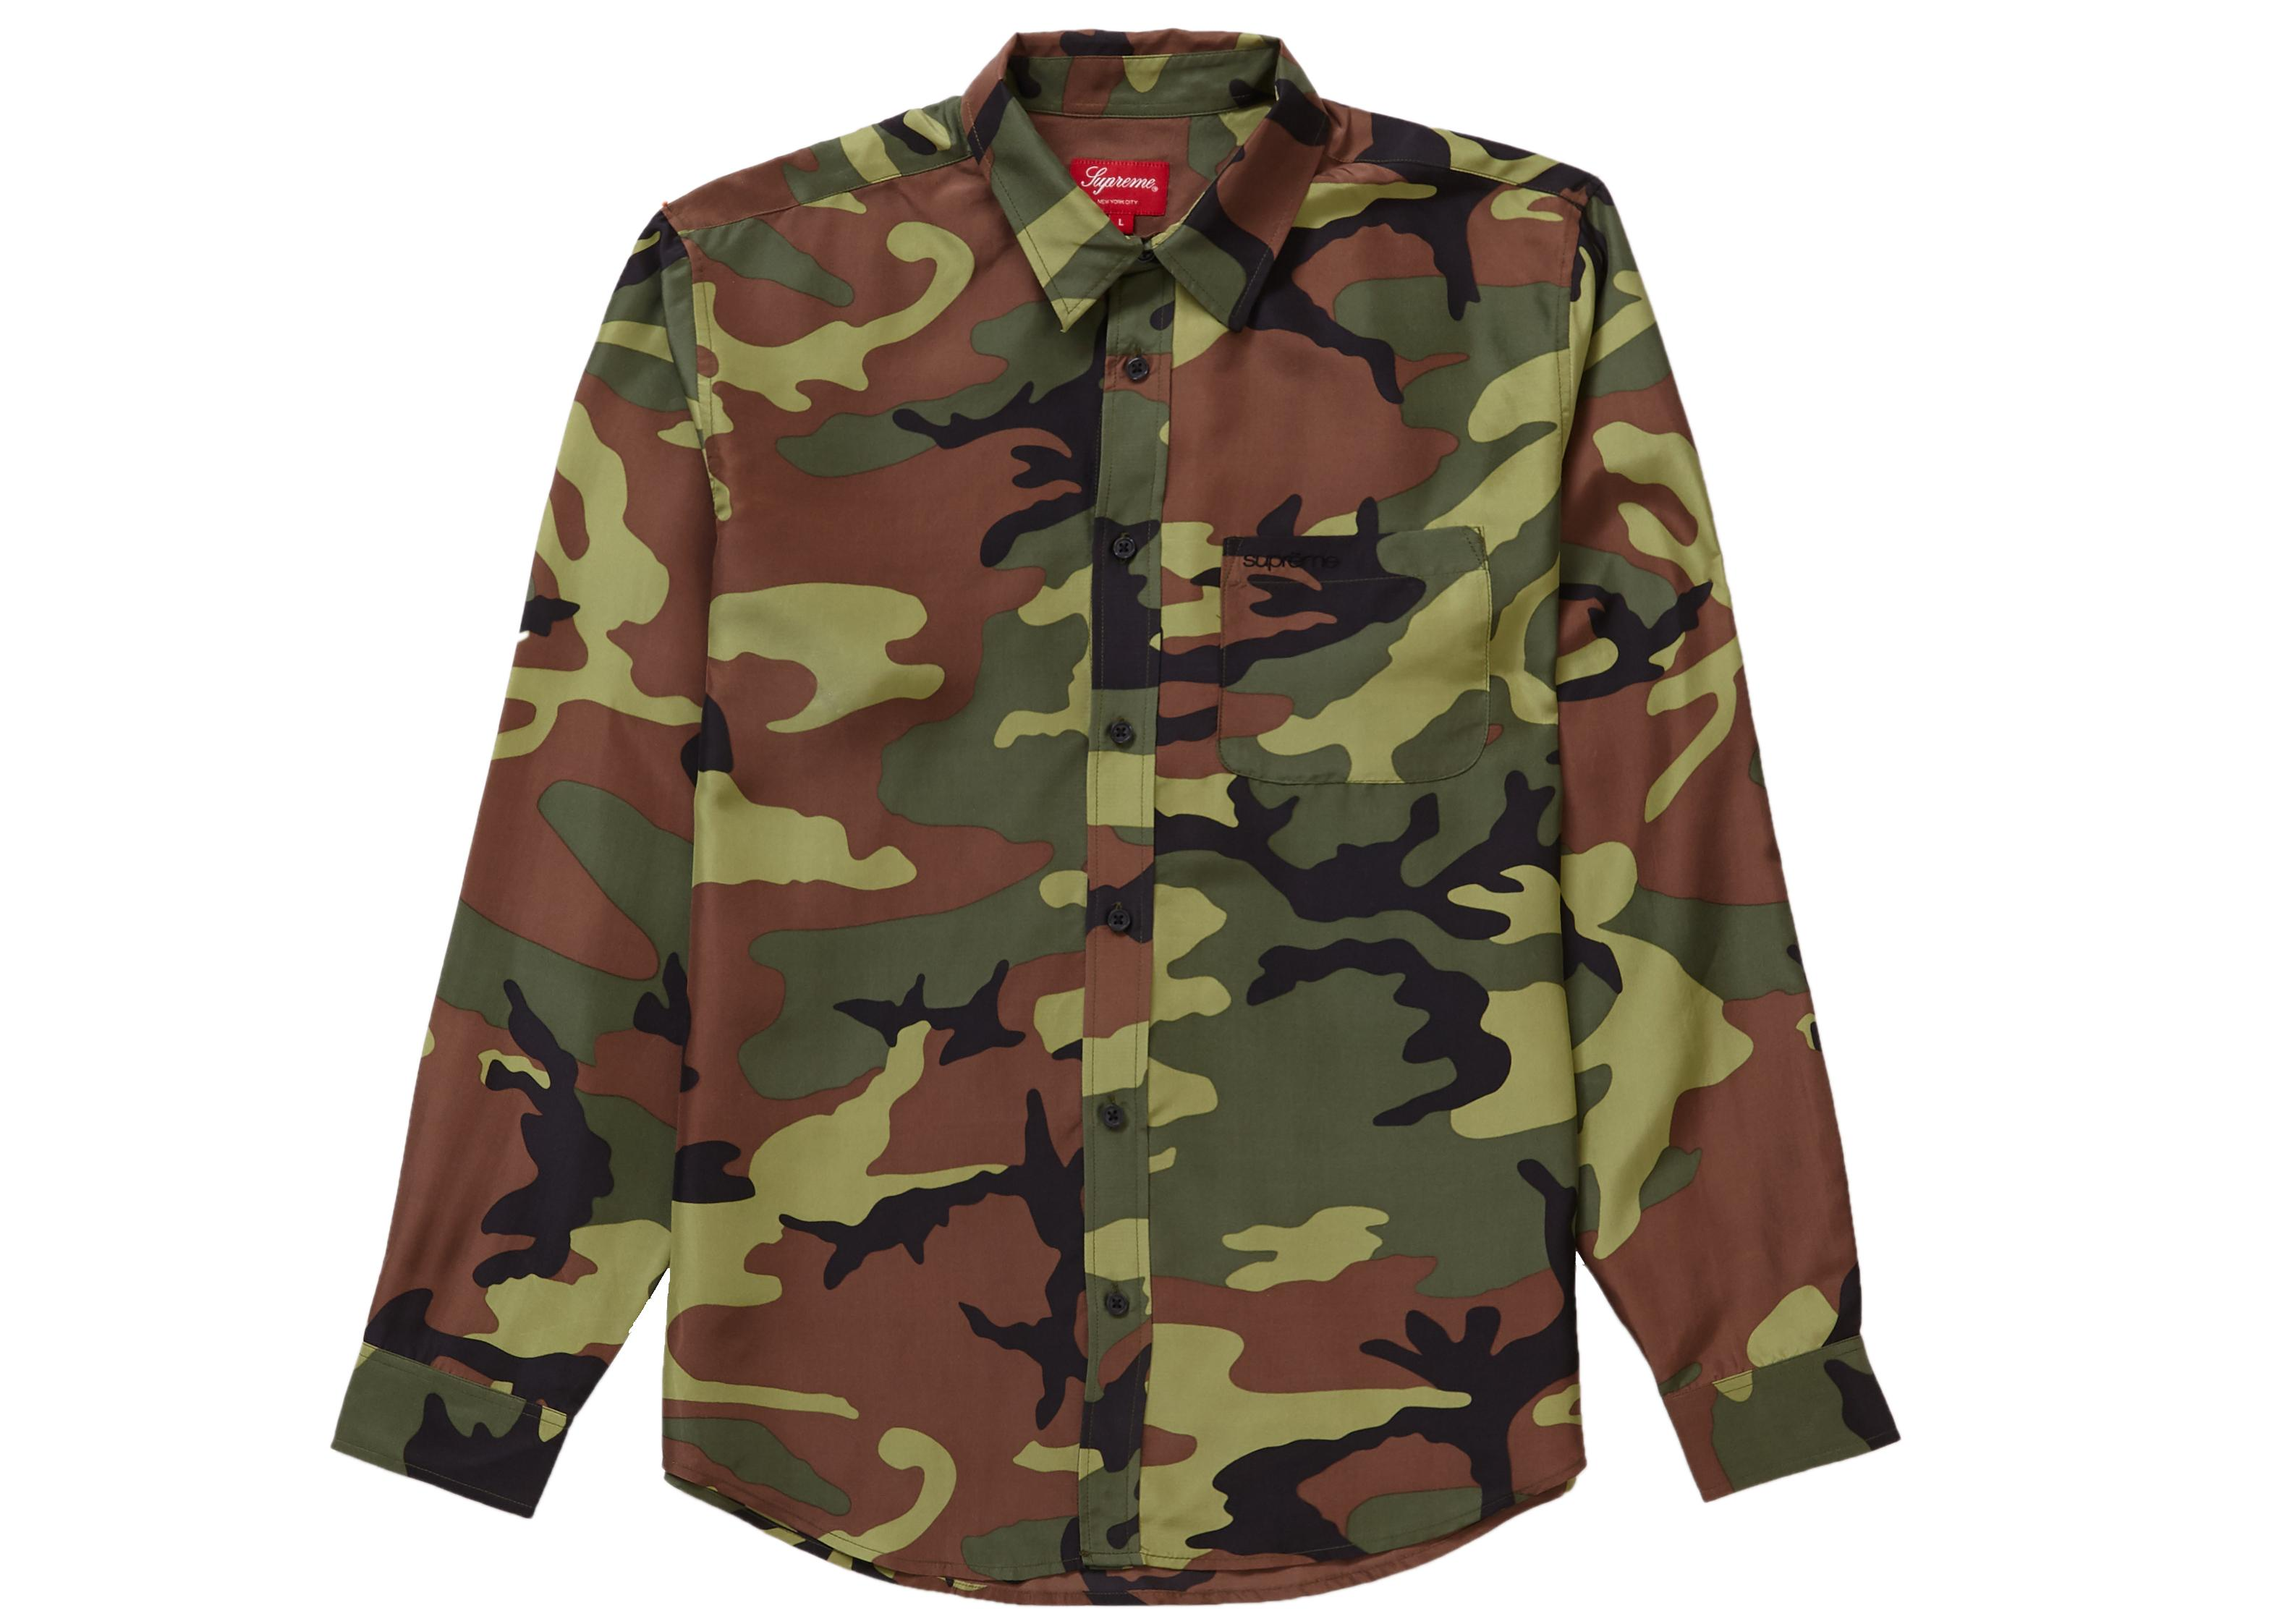 f0a24adc Supreme Silk Camo Shirt Woodland Camo in Green for Men - Save 24% - Lyst